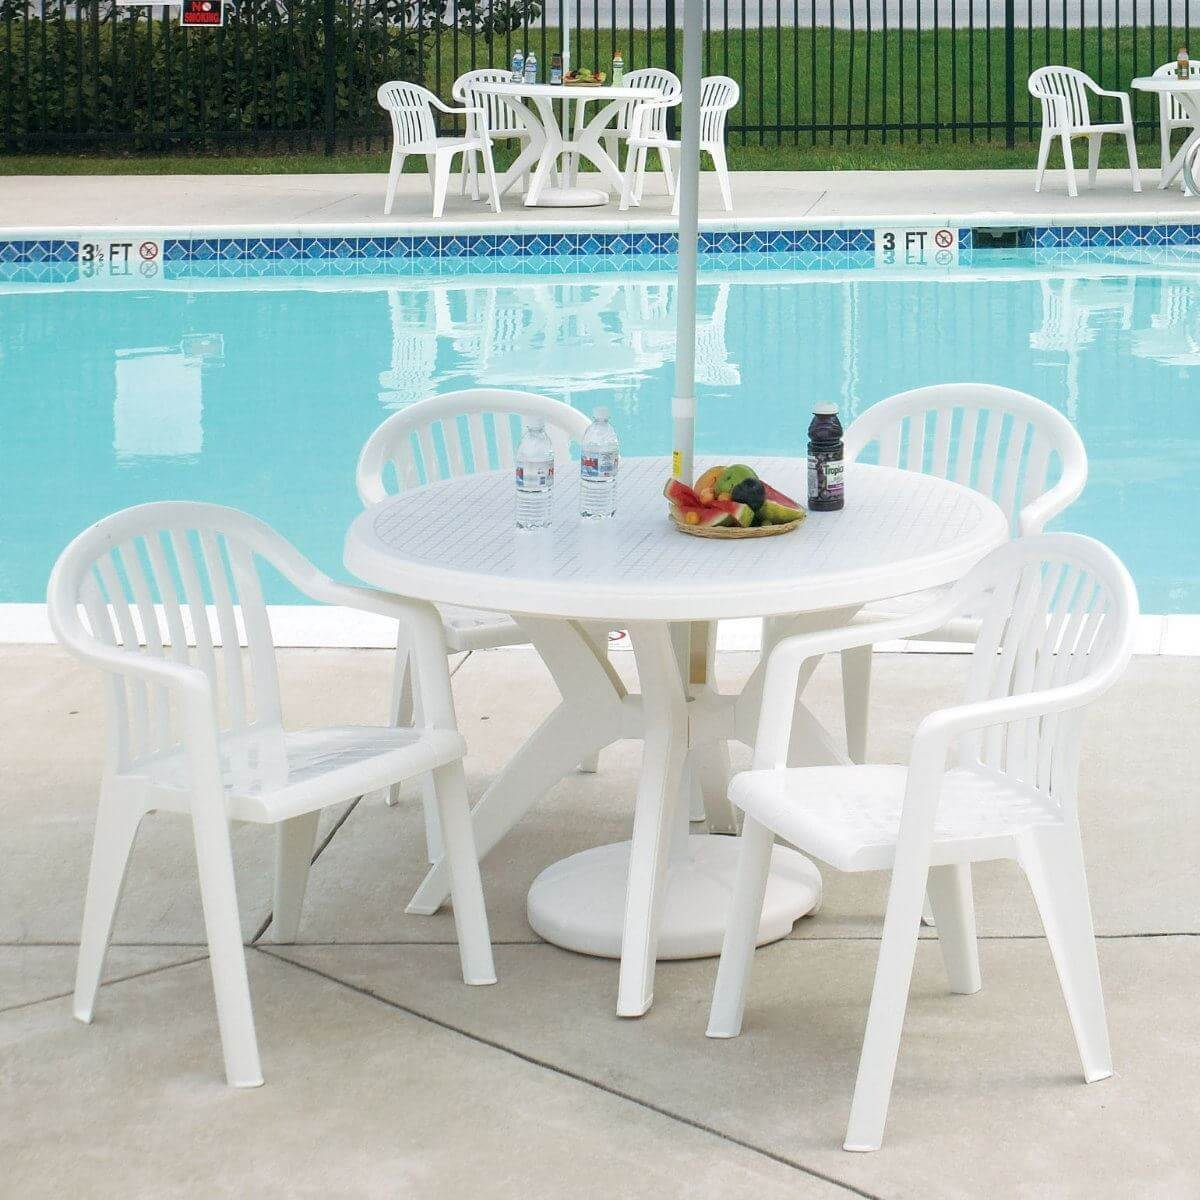 low back lawn chair 9 office brands armchair plastic resin miami lowback pool furniture supply picture of stacking lbs